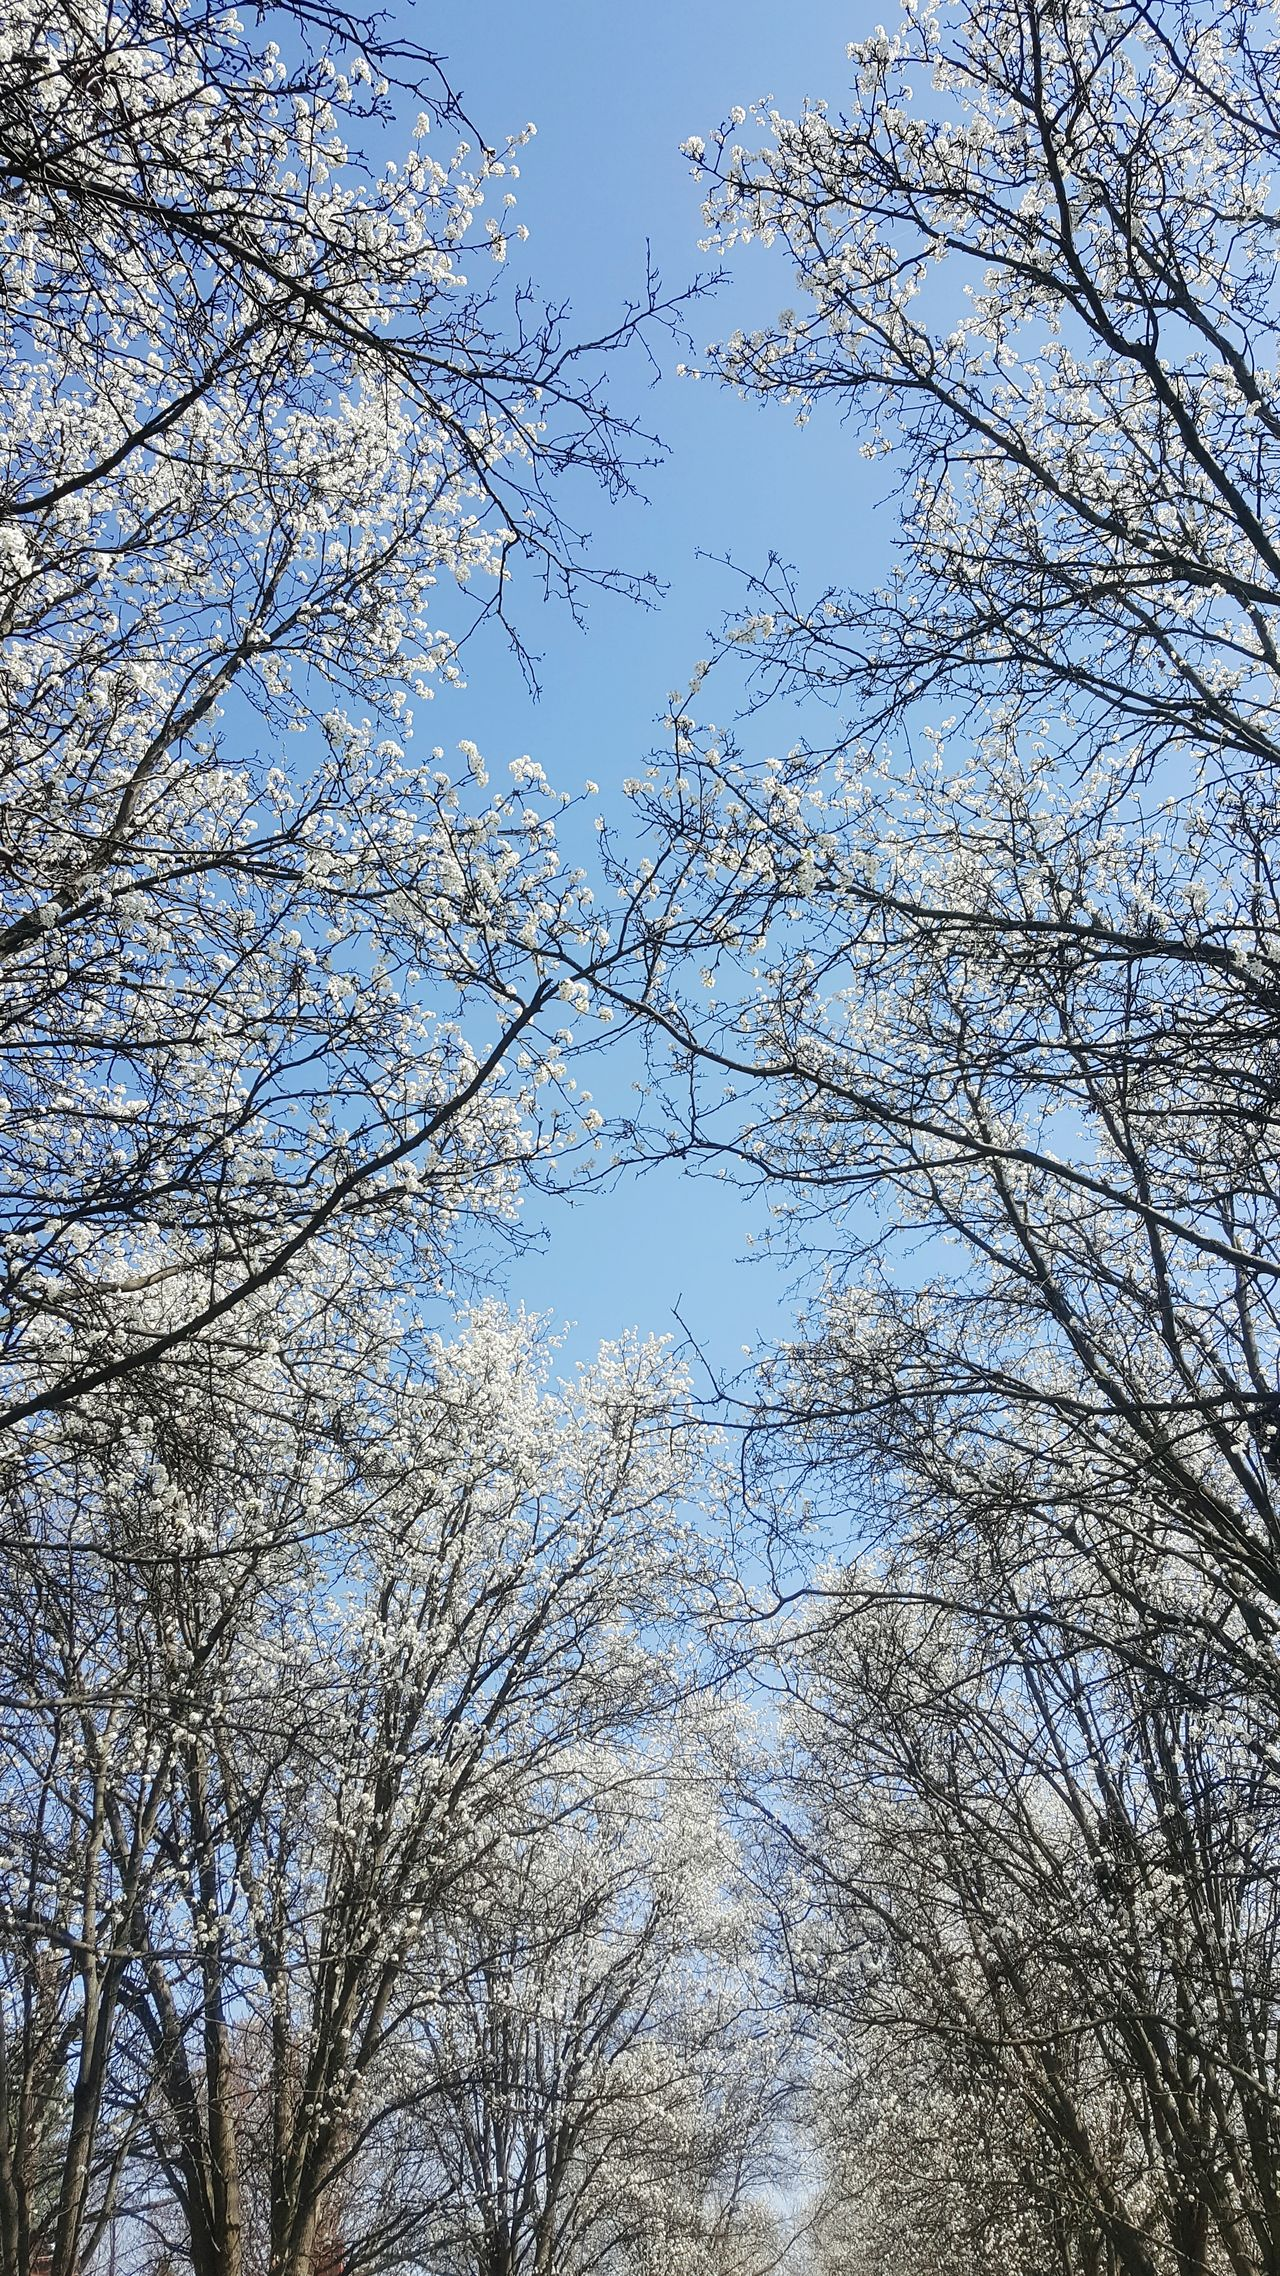 Spring Nature Beauty In Nature Blue Sky White Blooms Trees Row Of Trees Flowering Trees White Blue White And Blue Abundance Blossoms  Springtime Low Angle View Spring Day Daylight Bright Sun Sunlight Branches Tree Branches And Sky Tranquility